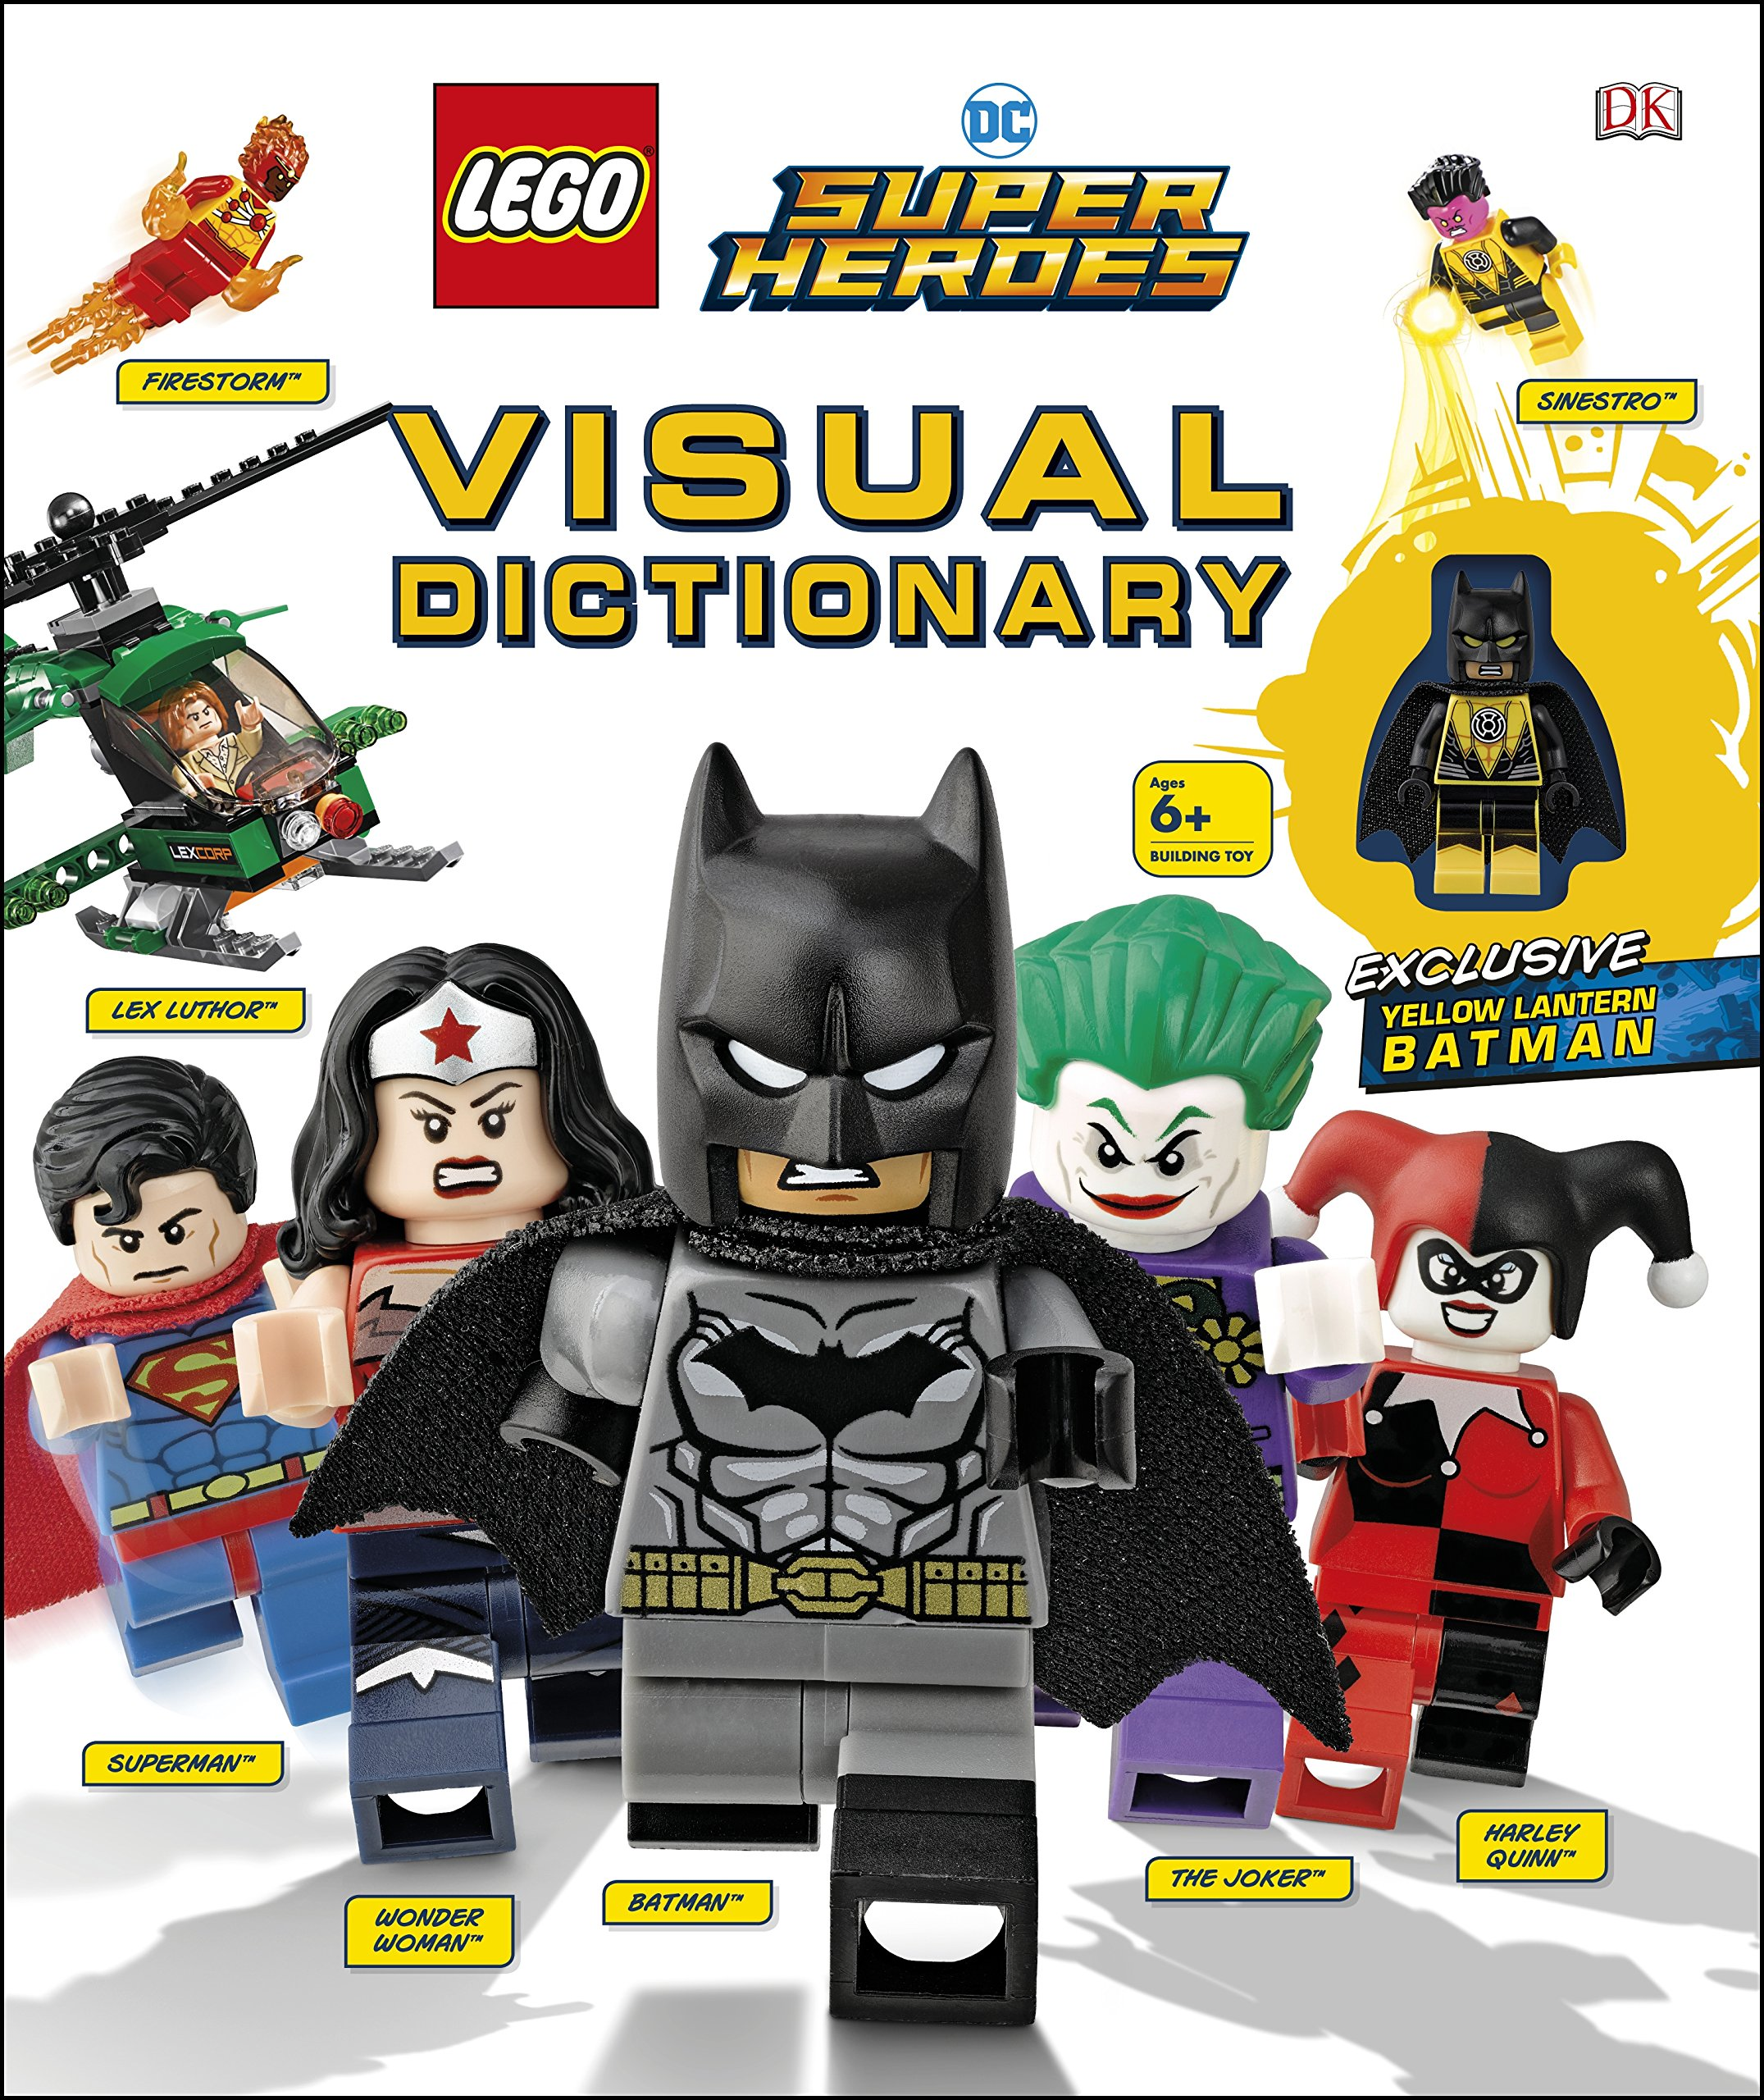 《LEGO DC Super Heroes Visual Dictionary: With Exclusive Yellow Lantern Batman Minifigure》